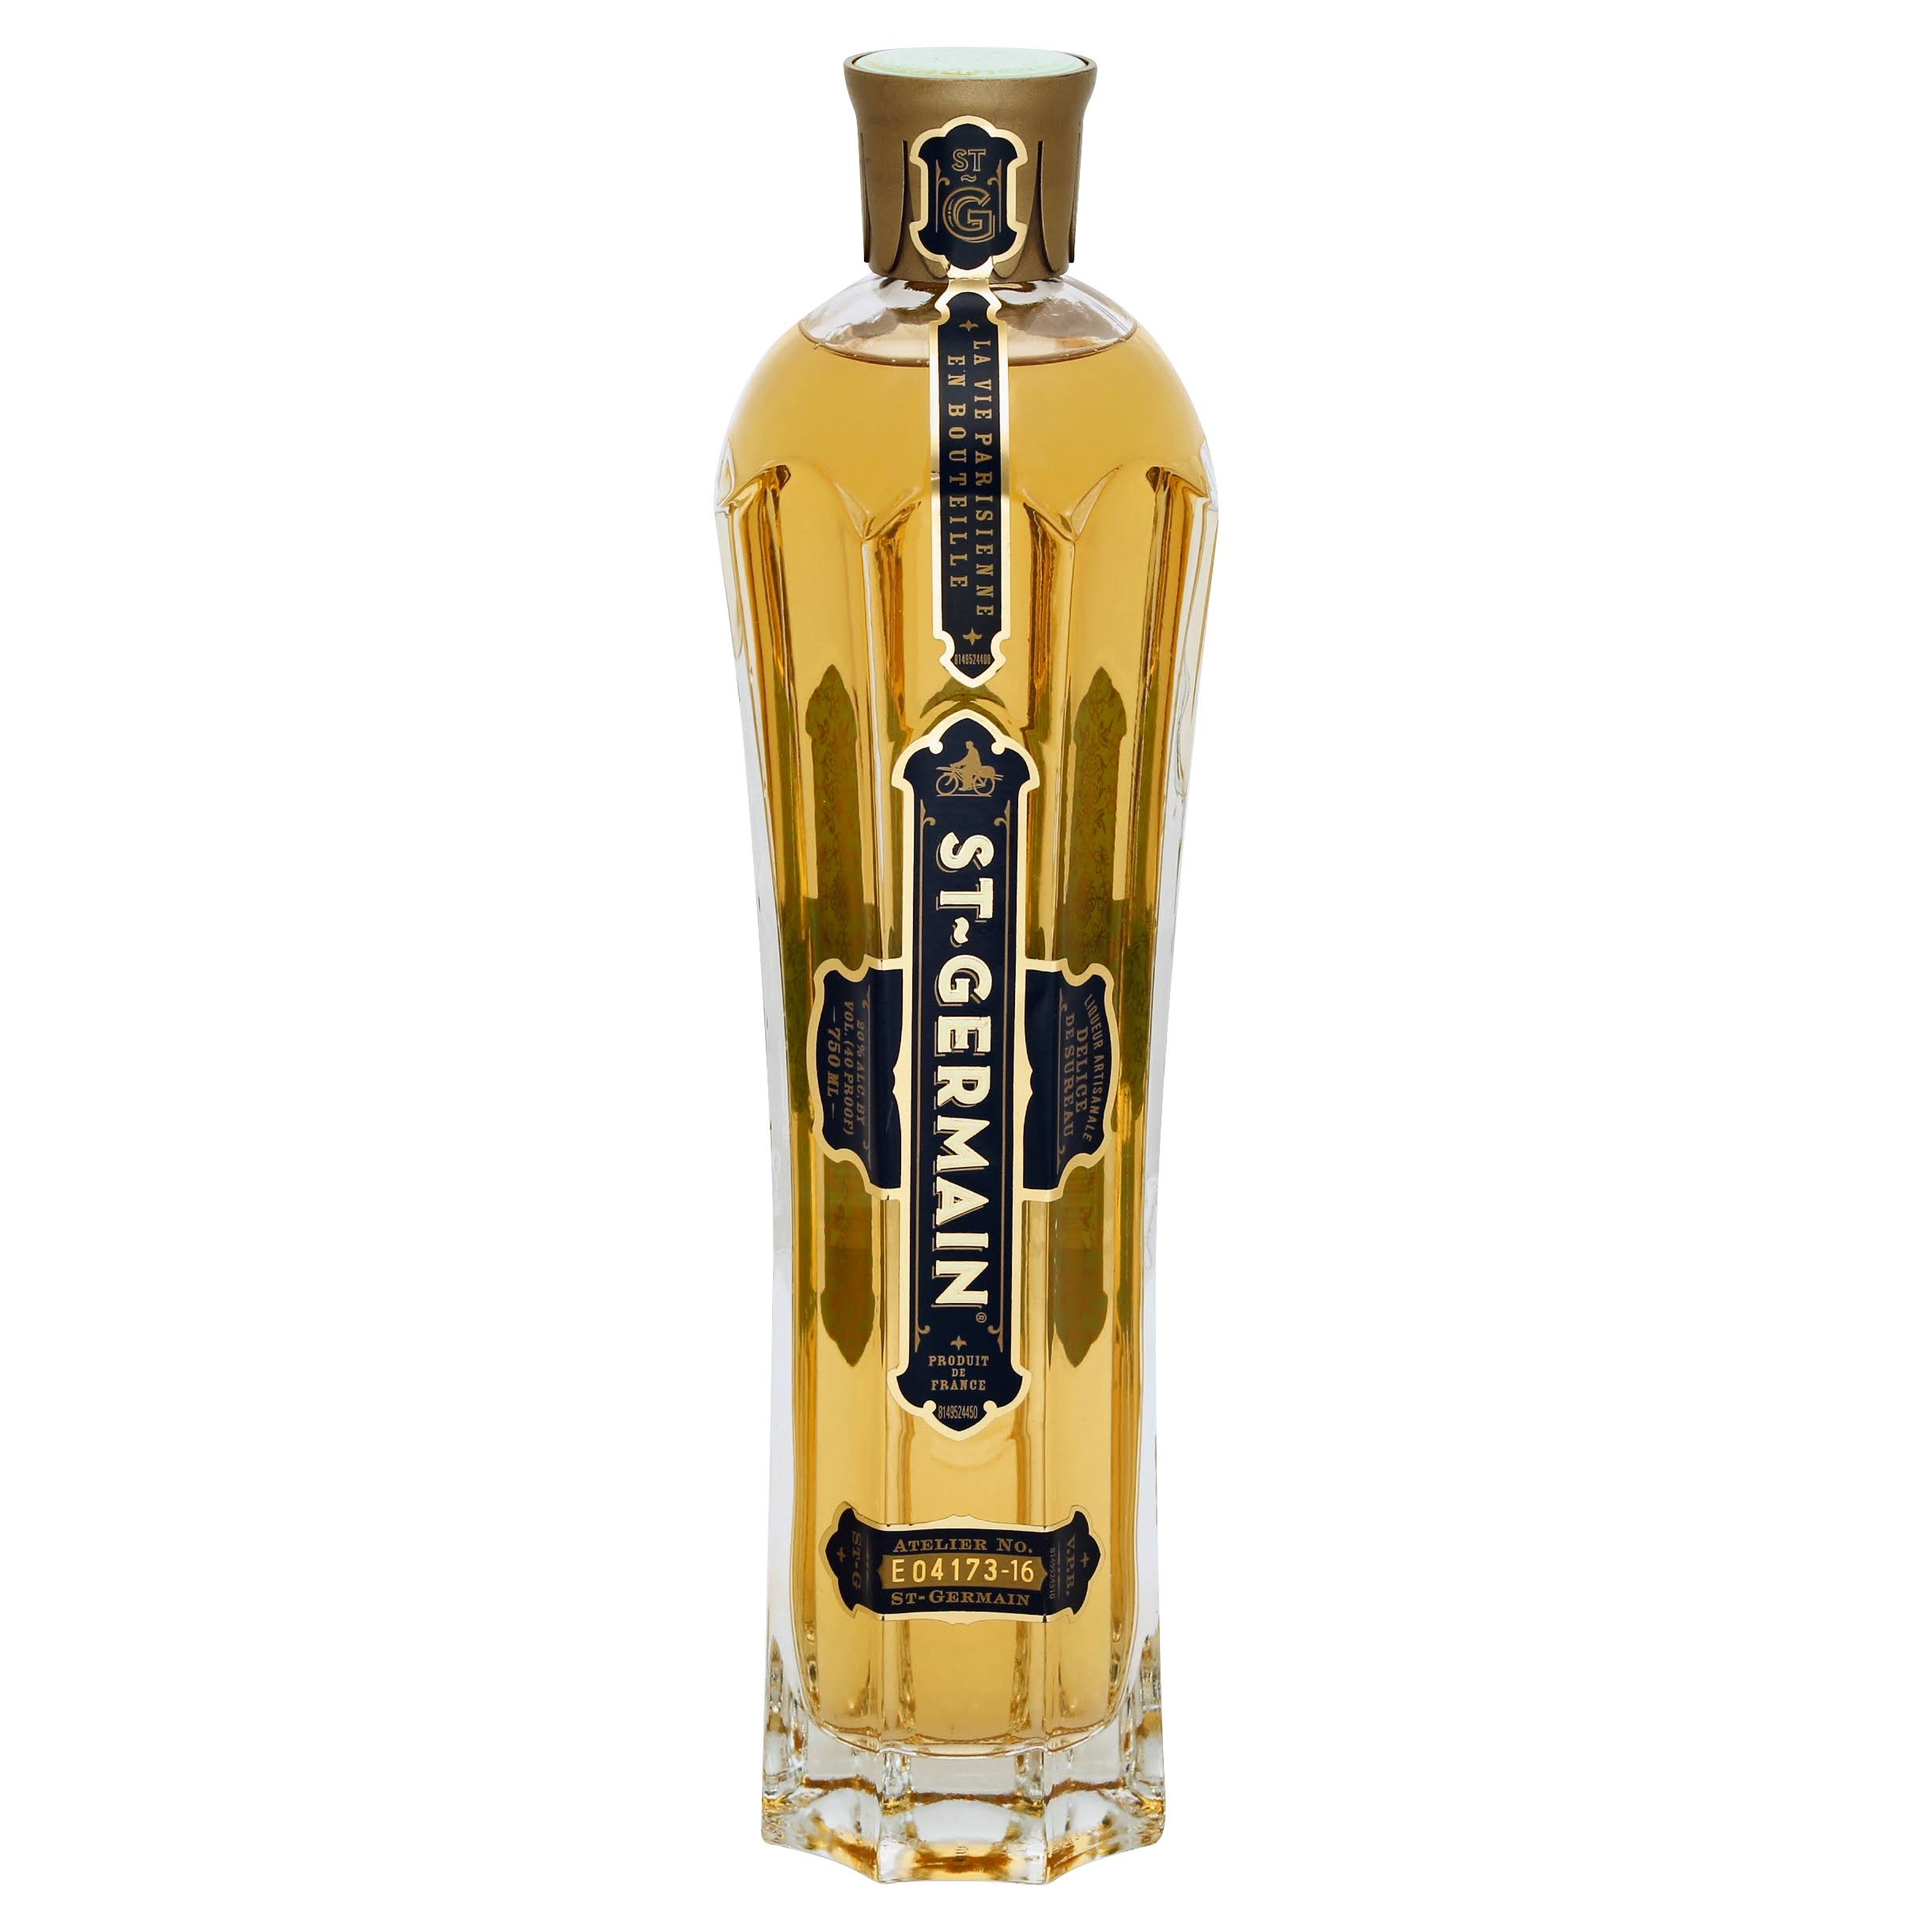 St Germain Elderflower Liqueur - 750ml